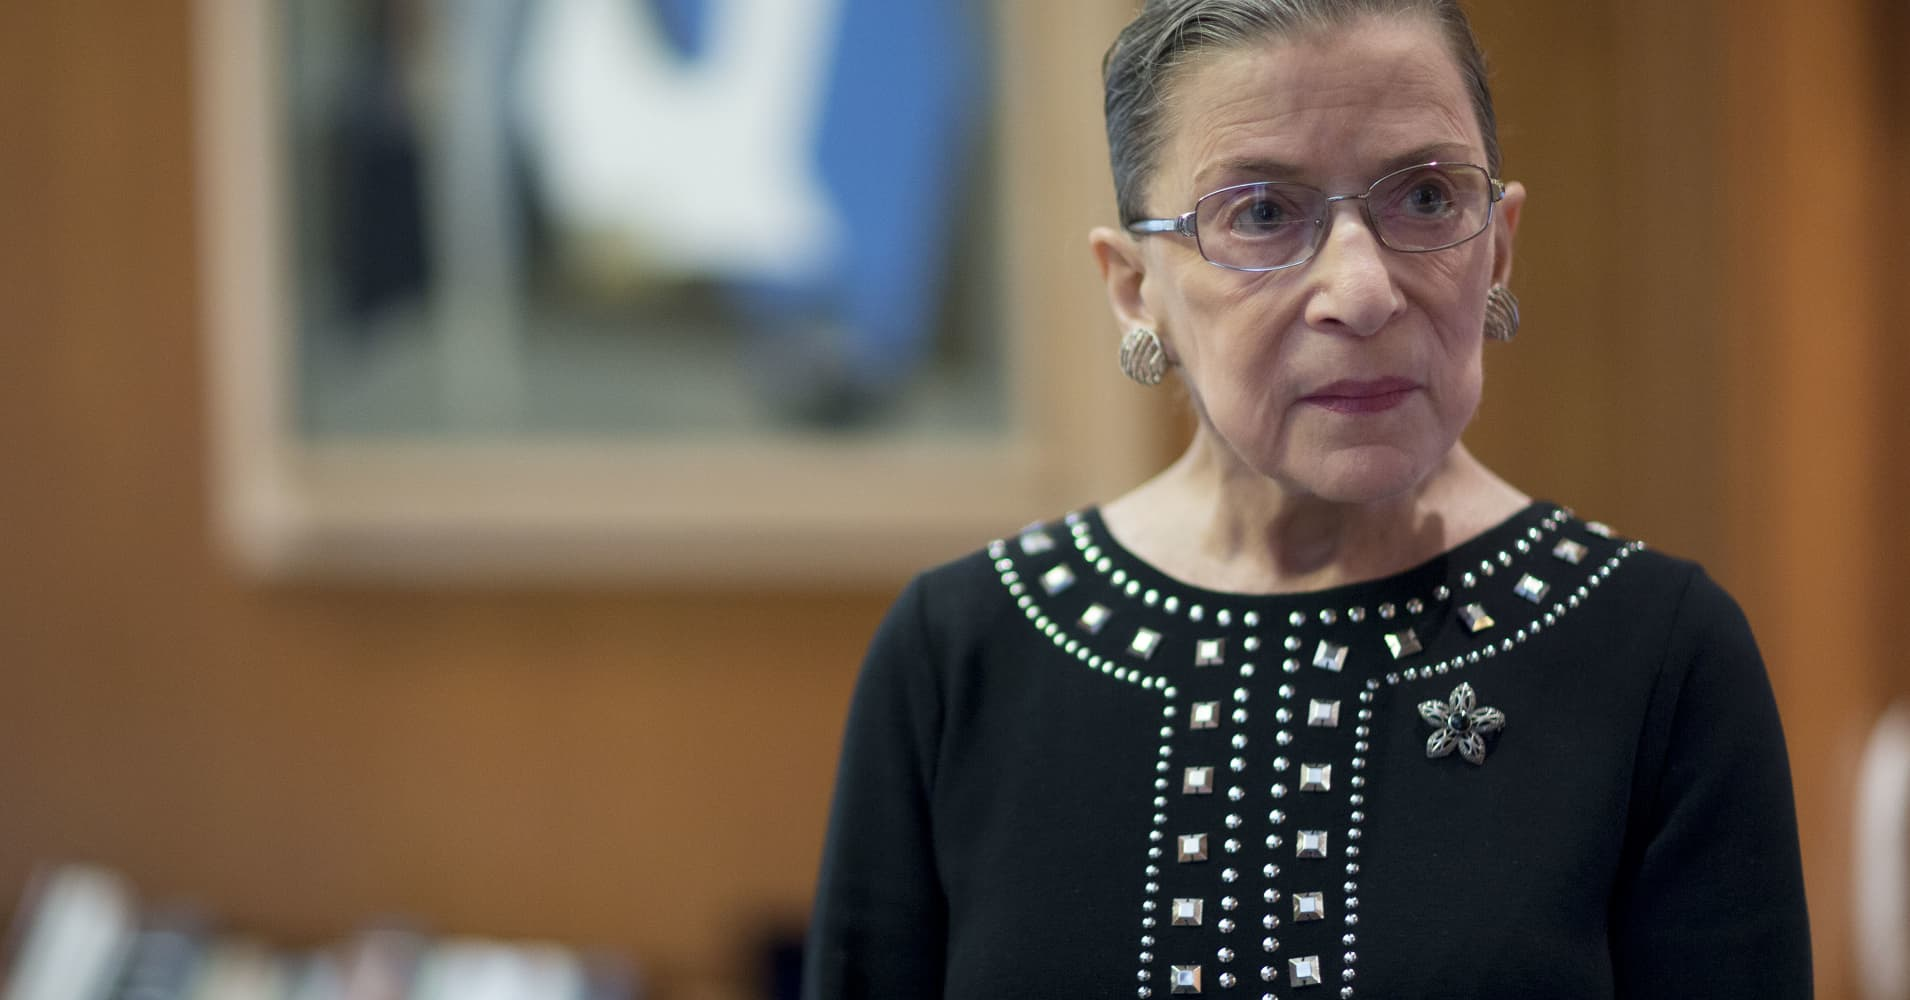 Cancer surgeons expect Justice Ruth Bader Ginsburg to recover in weeks